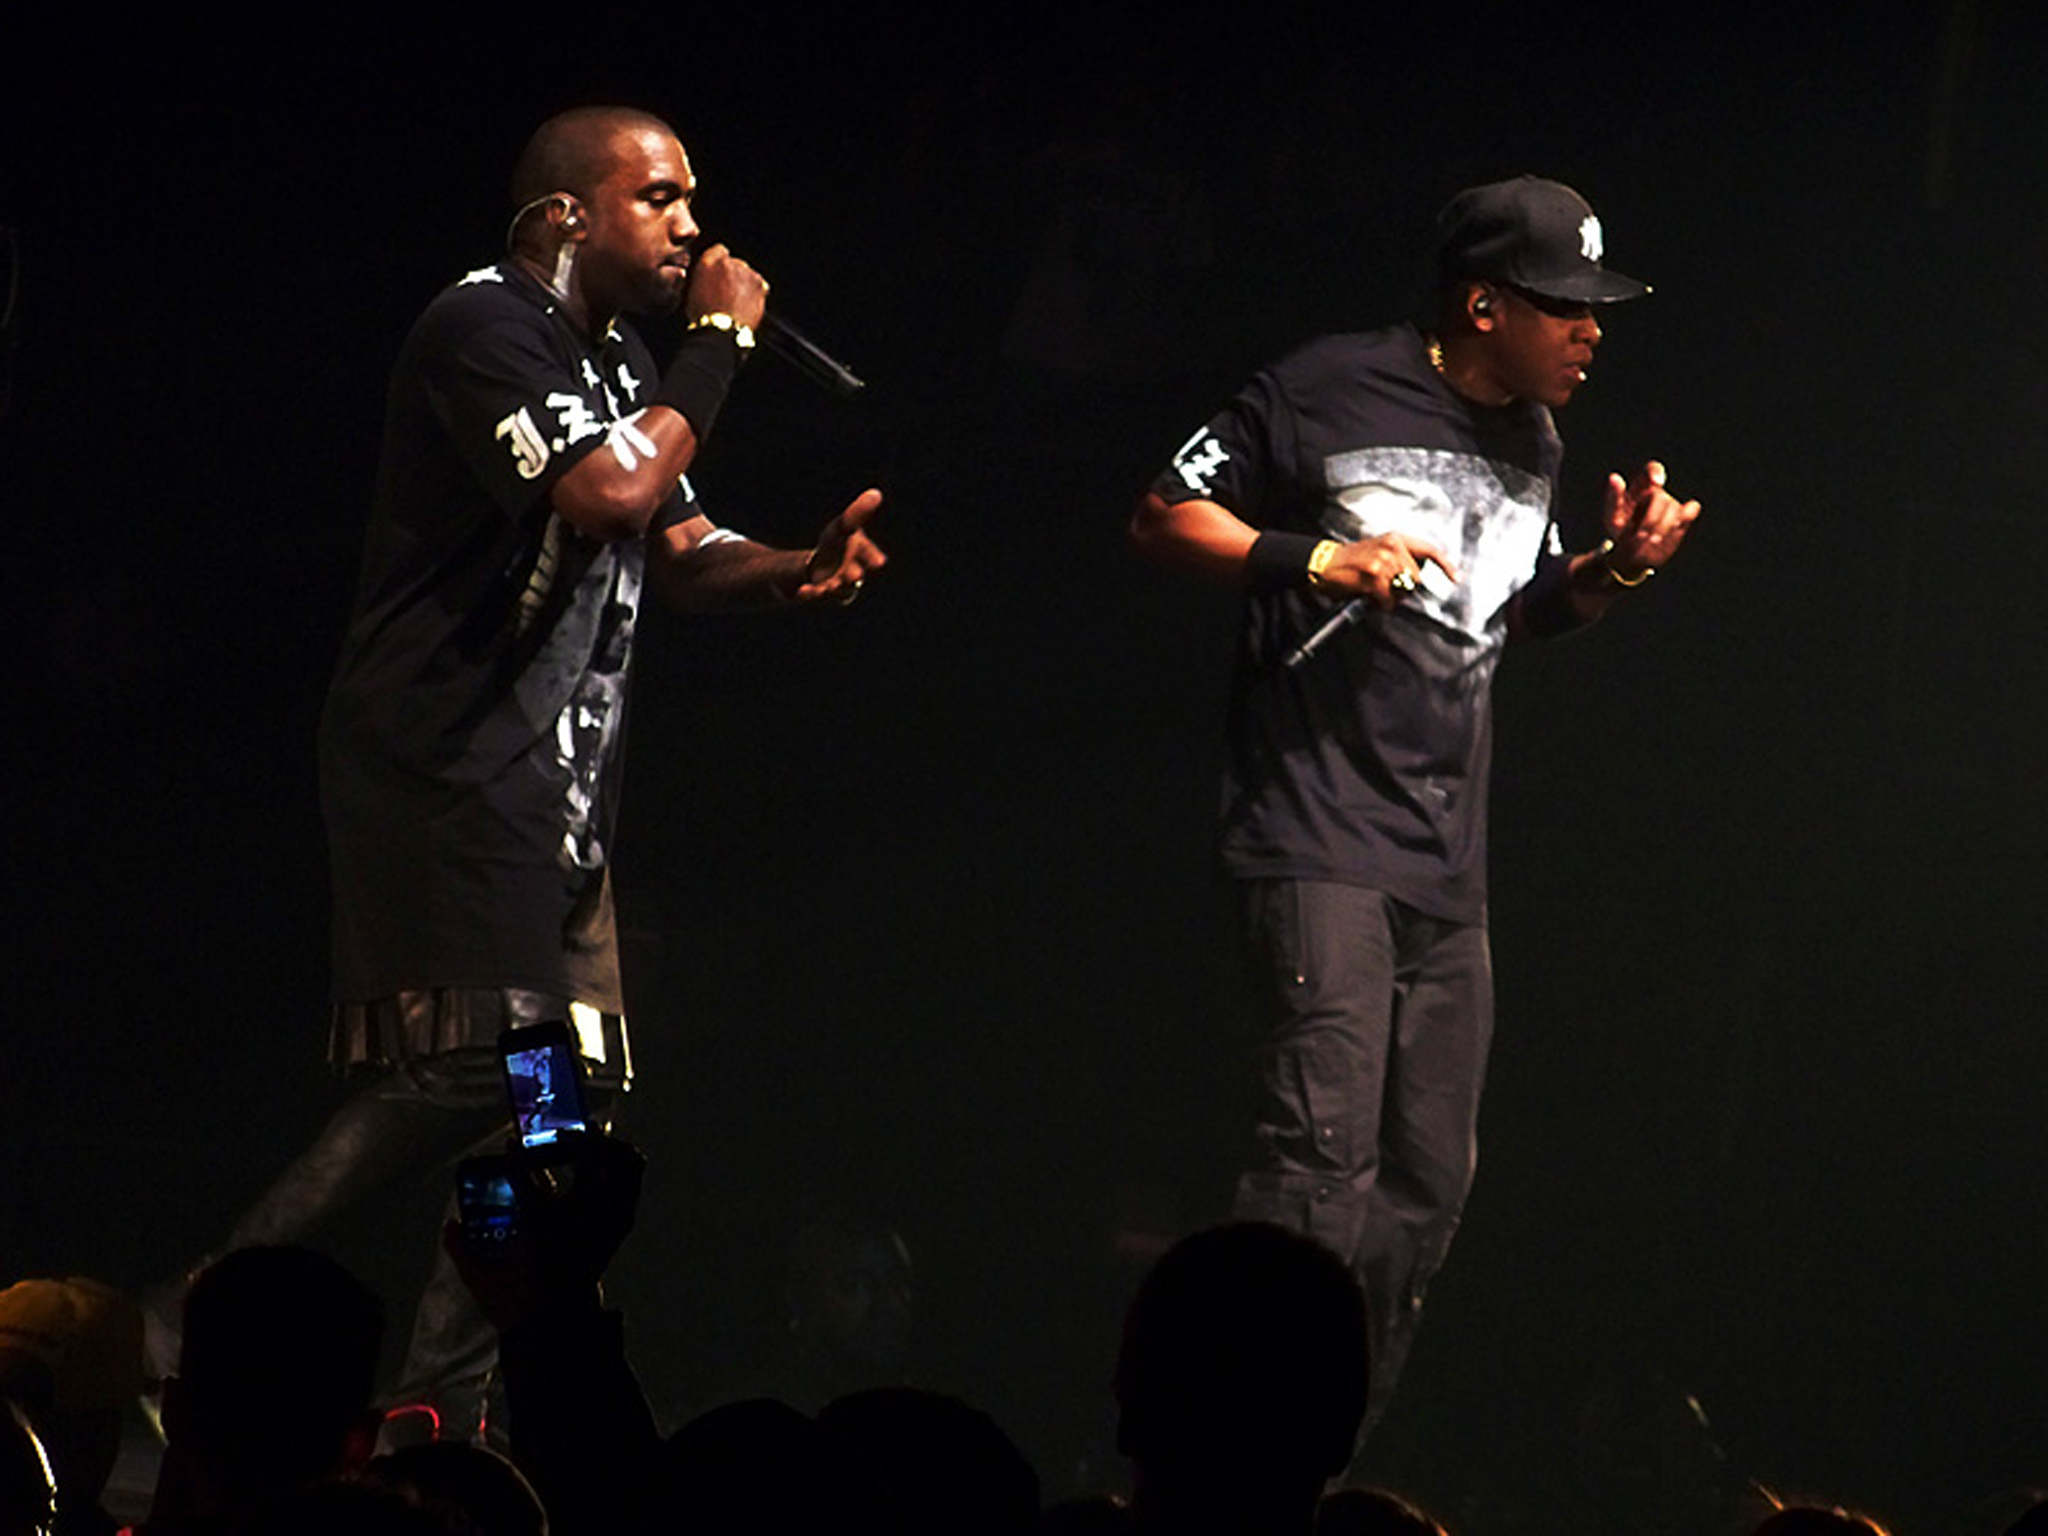 Kanye West and Jay-Z on stage on the Watch the Throne tour